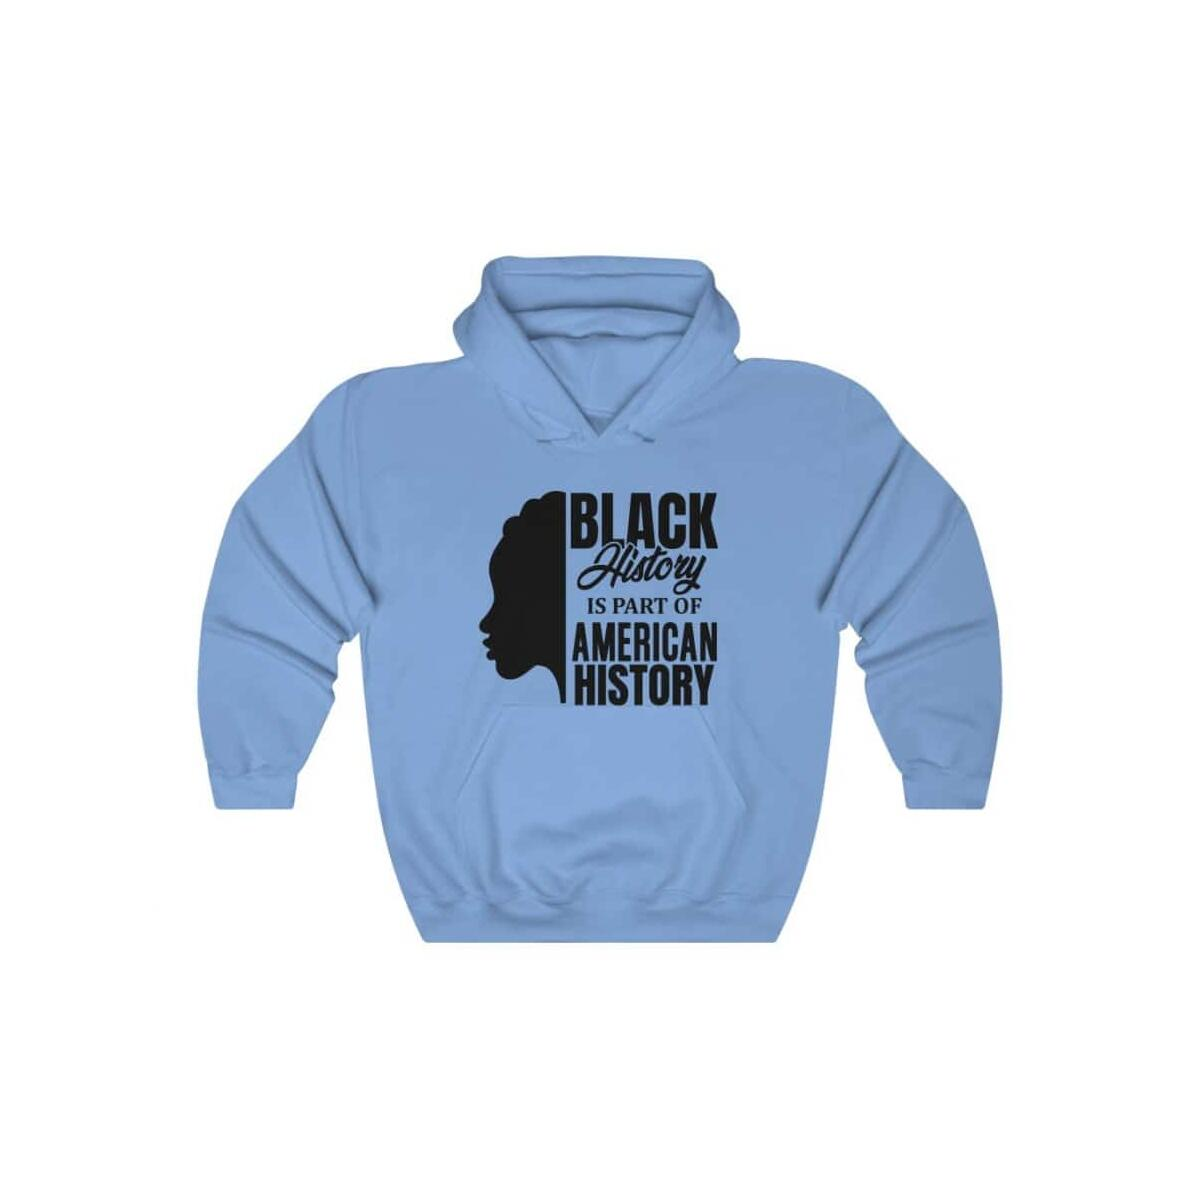 Afrocentric Black History Hooded Sweatshirt